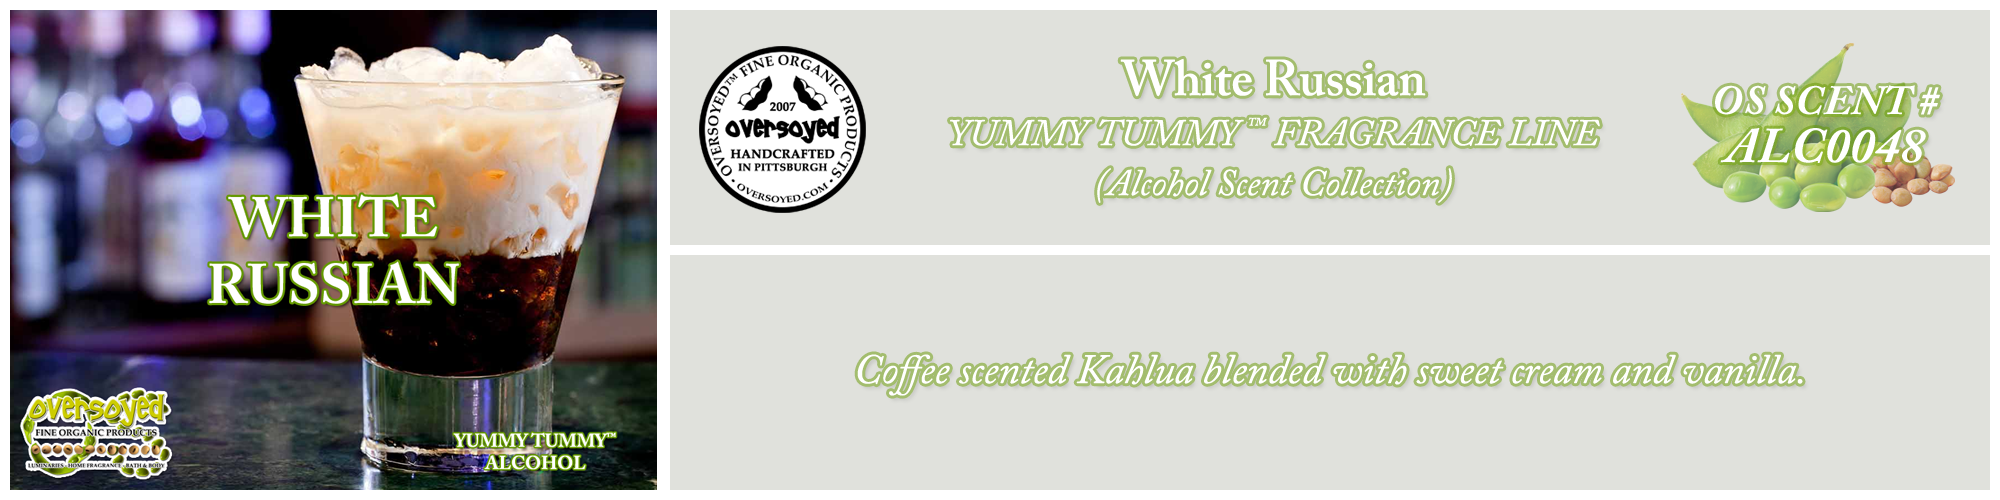 White Russian Handcrafted Products Collection